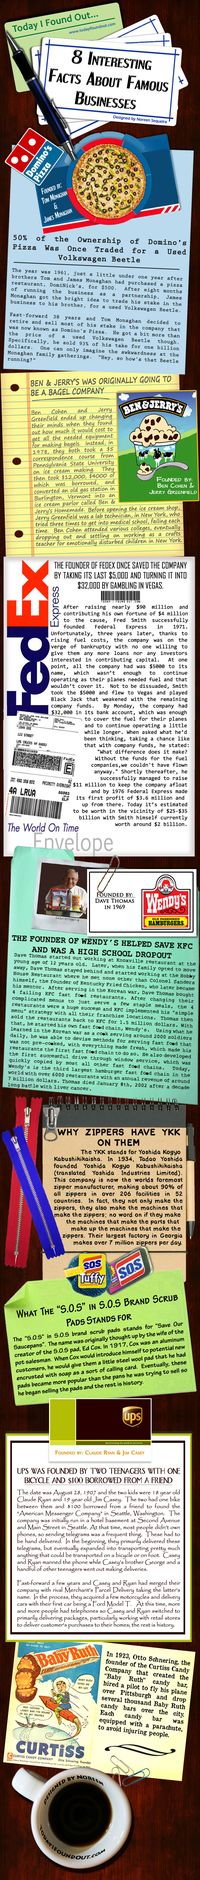 8-Interesting-Facts-About-Famous-Businesses-copy